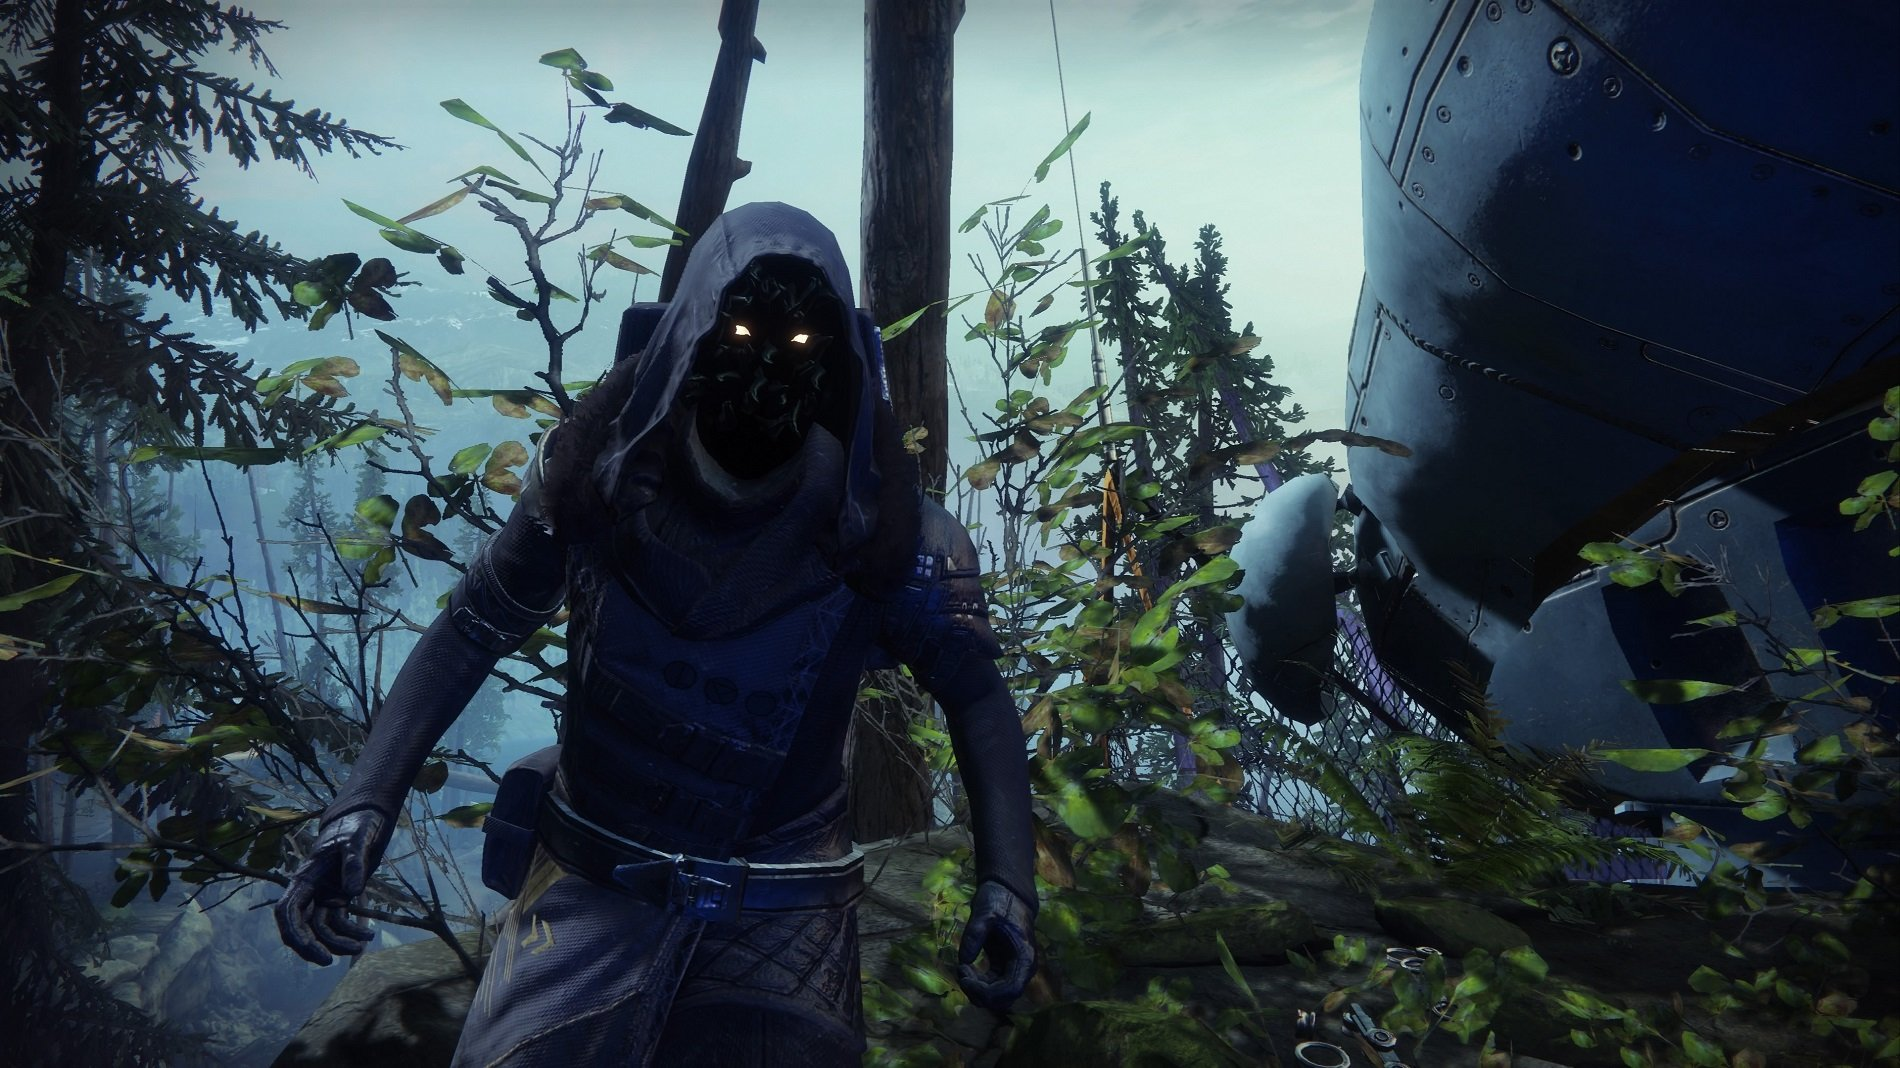 Where to find Xur in Destiny 2 - September 4, 2020